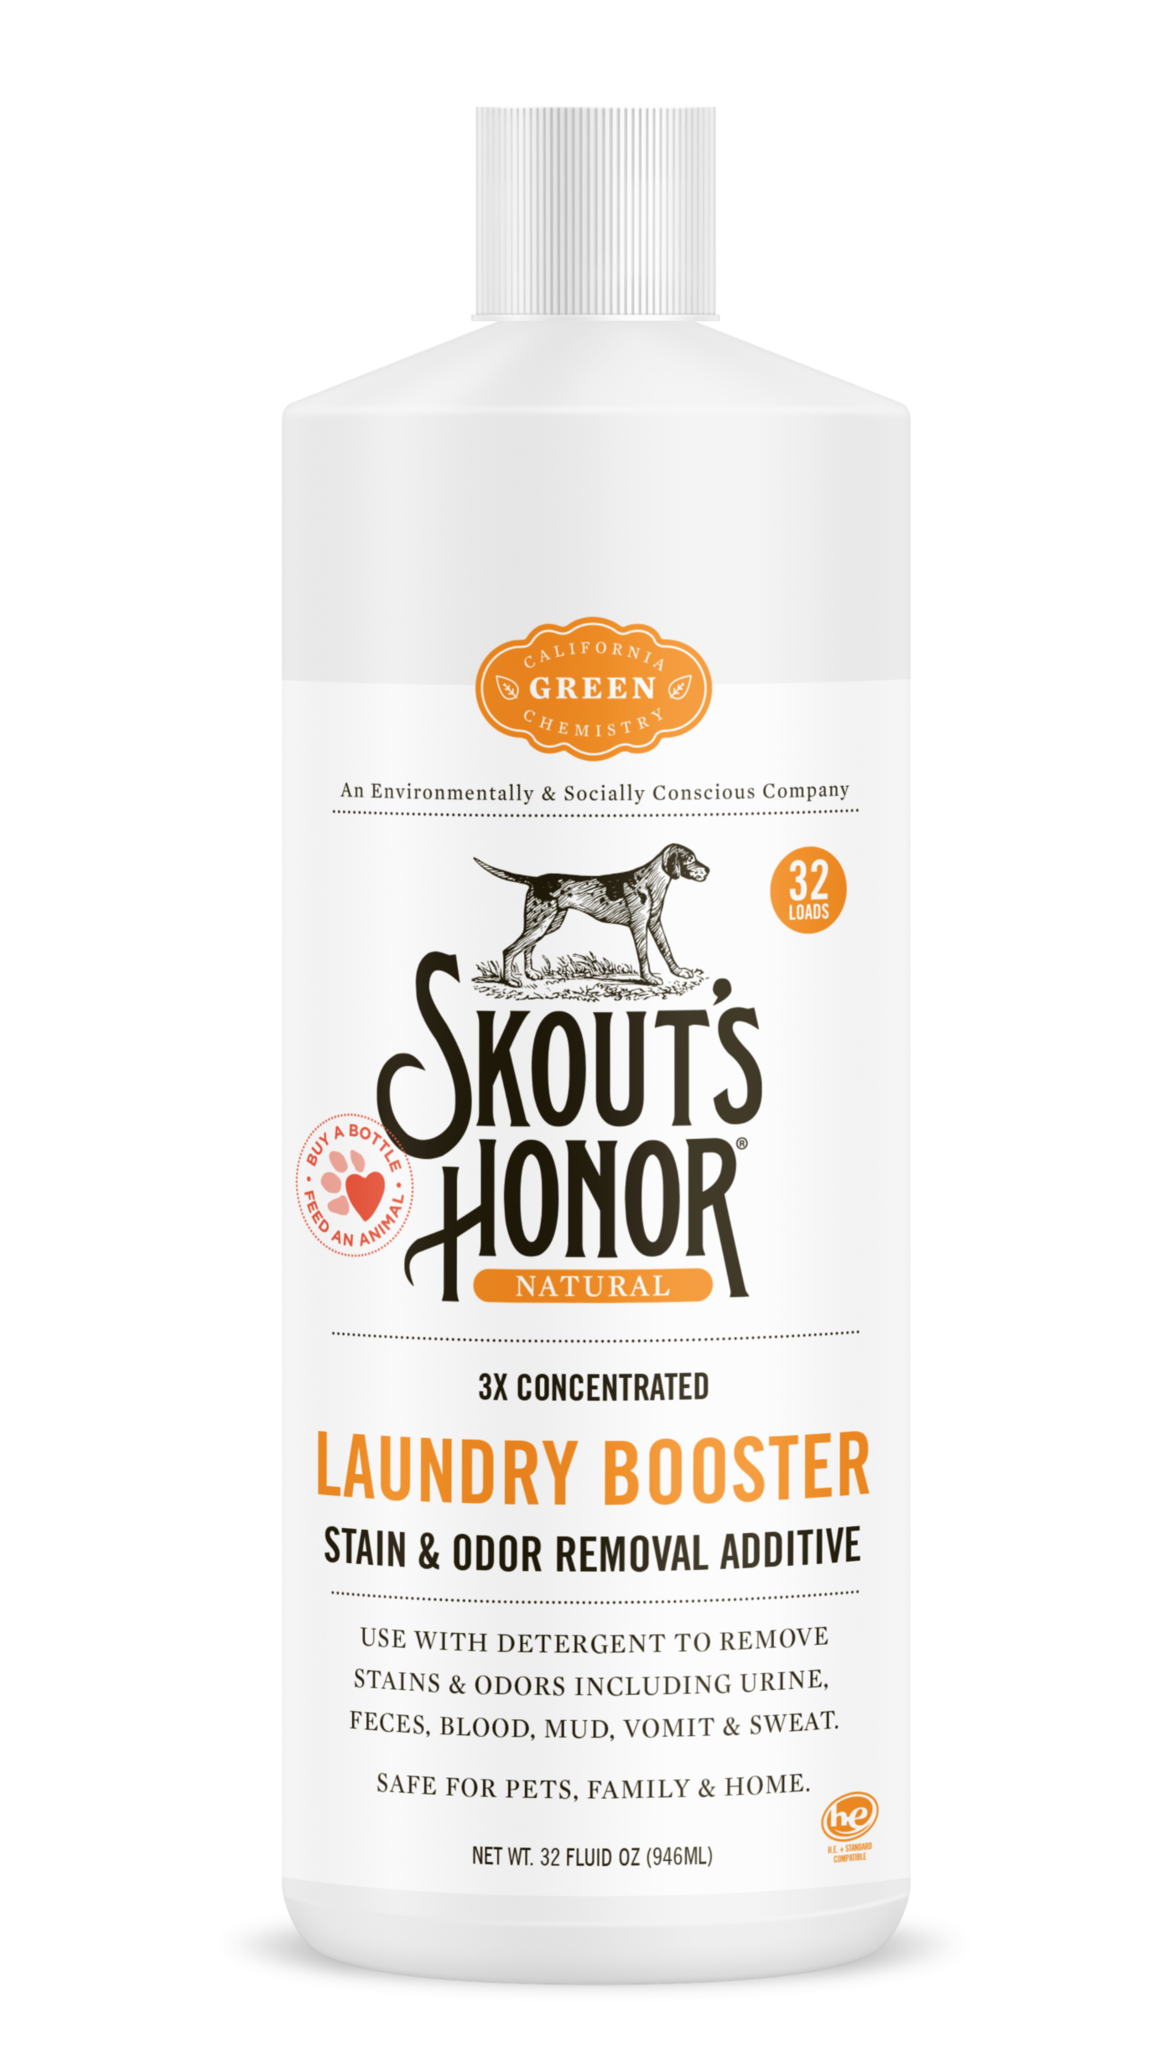 Skout's Honor Cleaner Laundry Booster